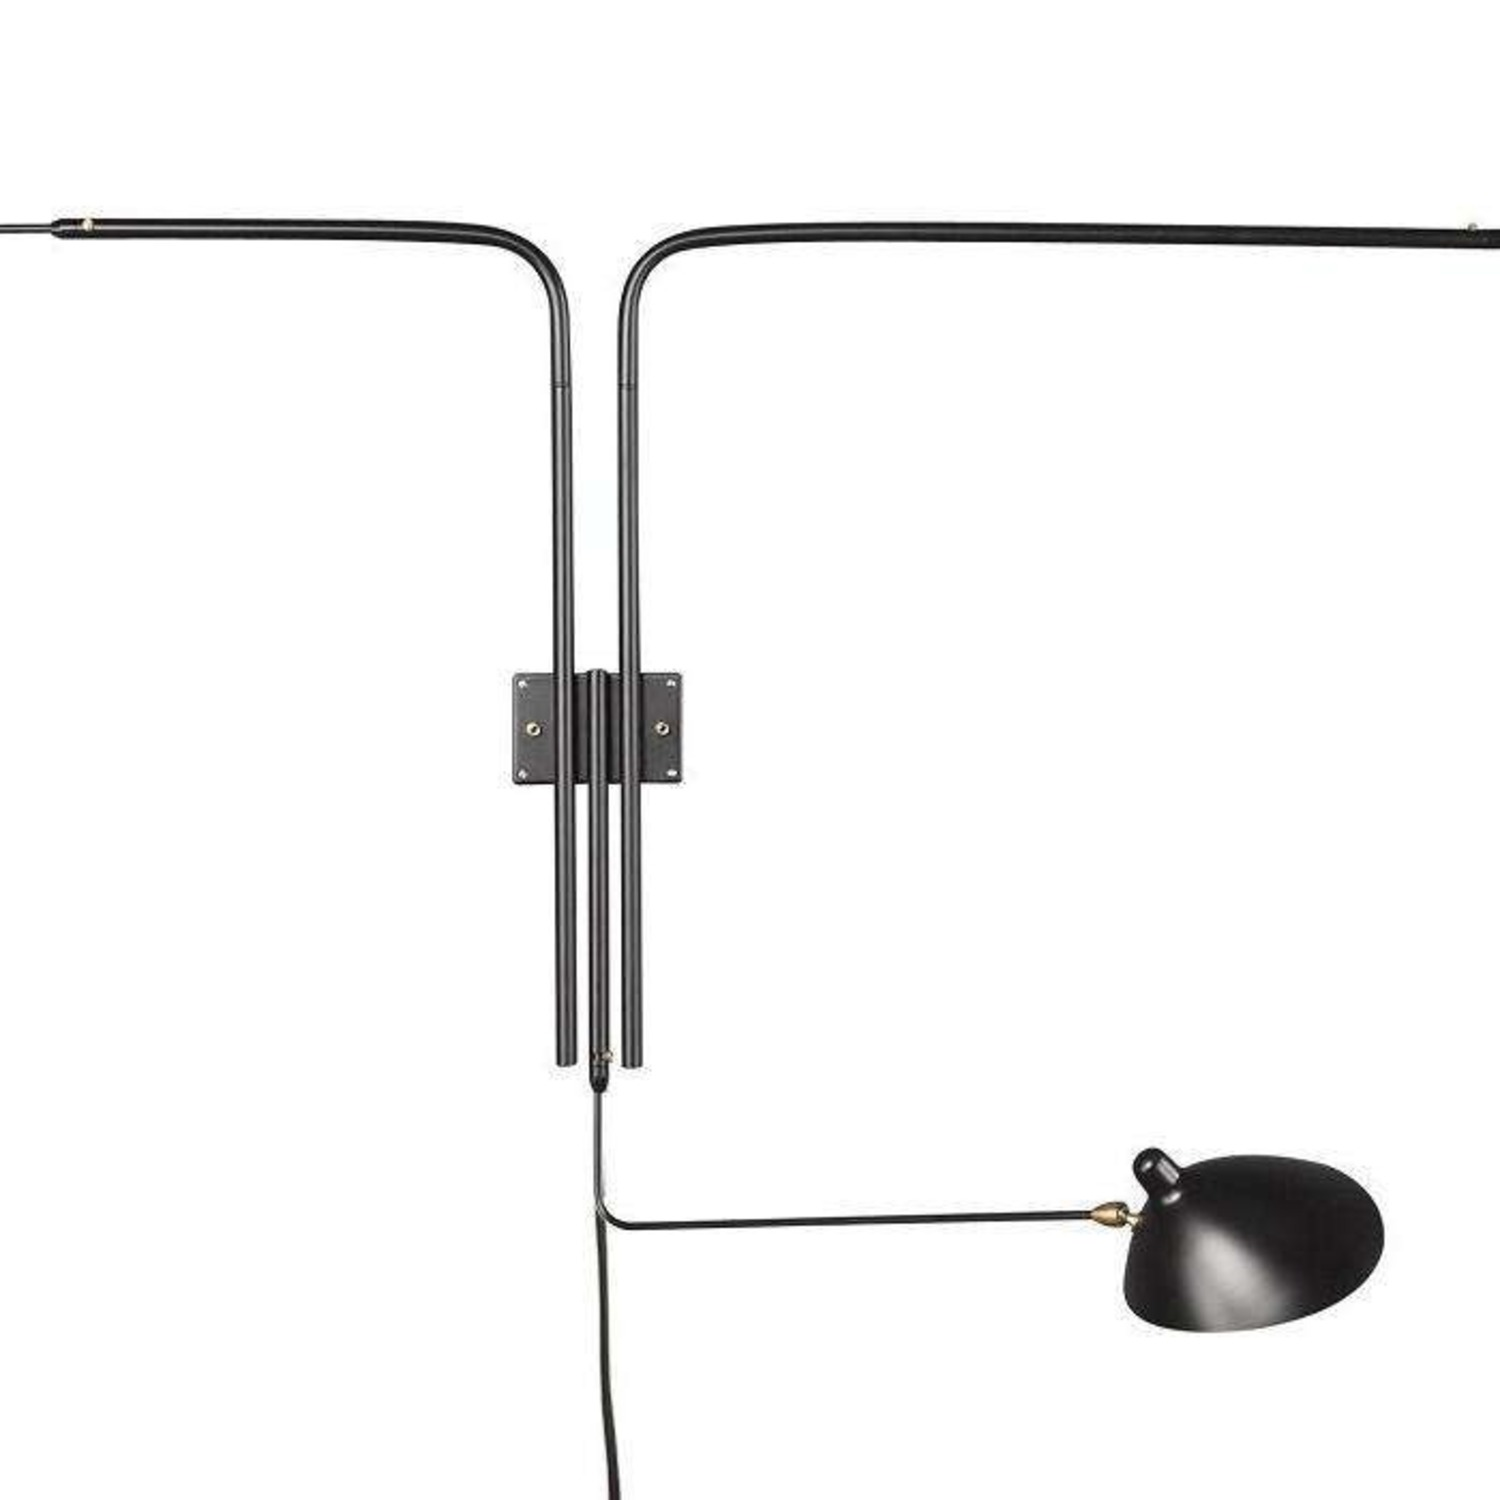 Midcentury Modern Rotating Wall Sconce - image-2